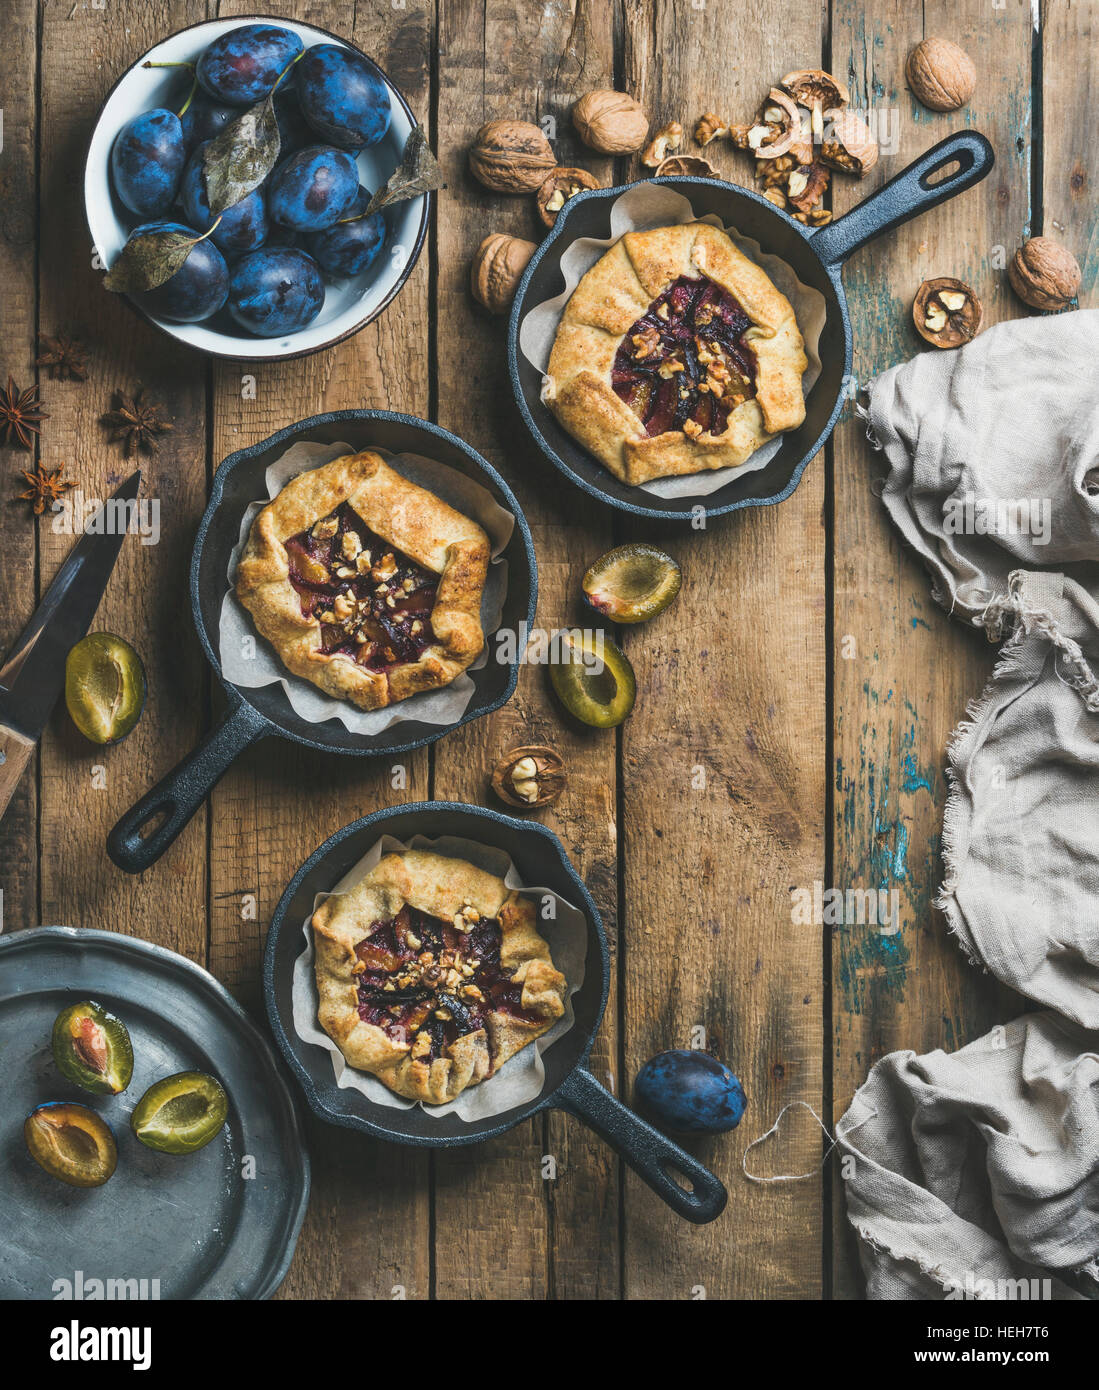 Plum and walnut crostata pie with ice-cream scoops in individual cast iron pans over rustic wooden table, top view, - Stock Image